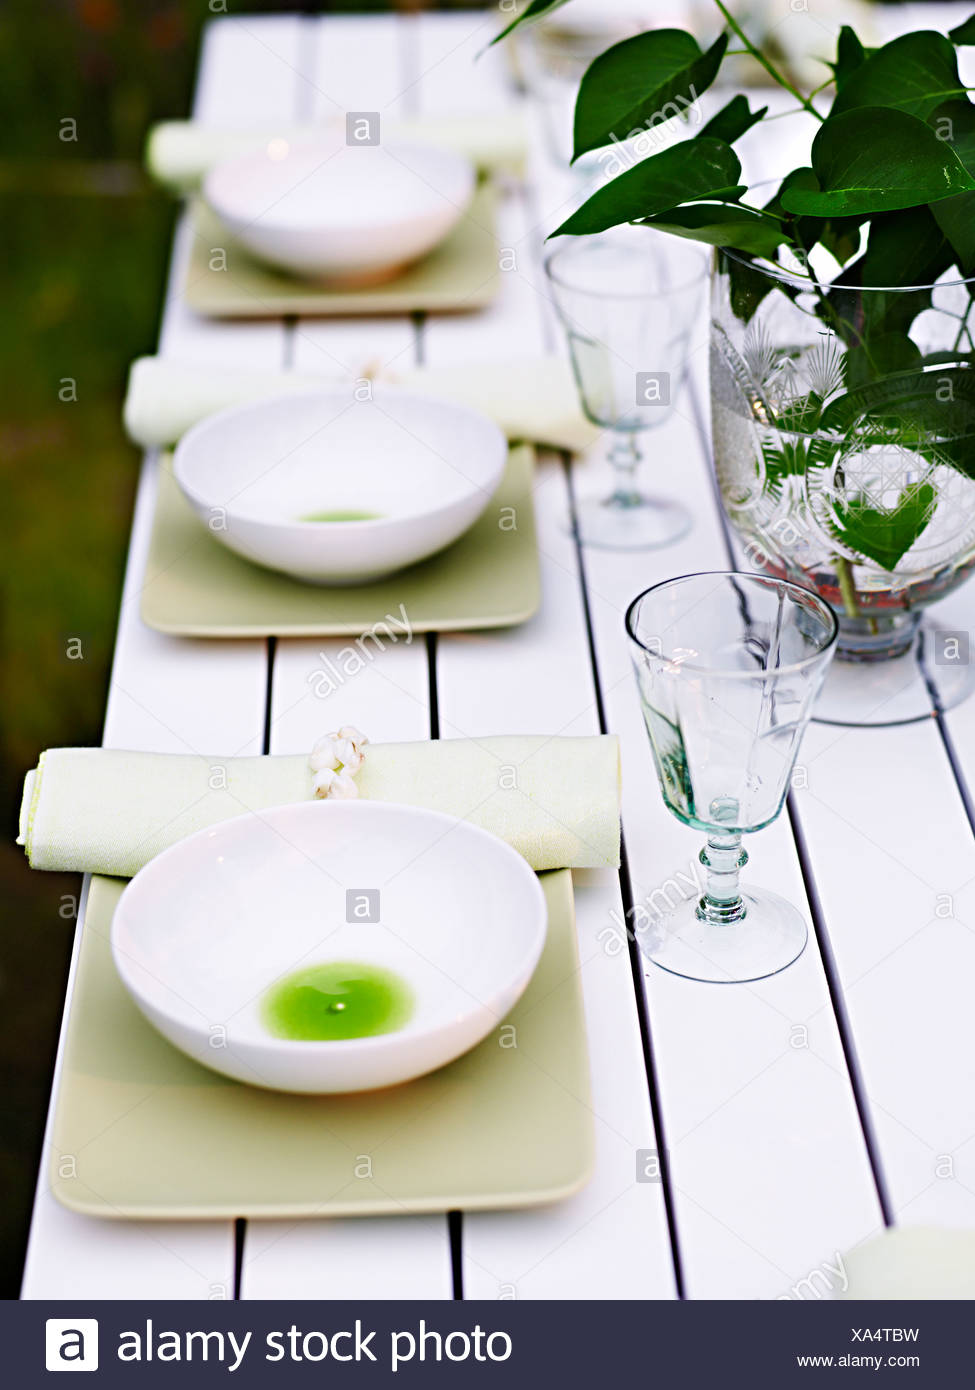 A laid table outdoors, Sweden. - Stock Image